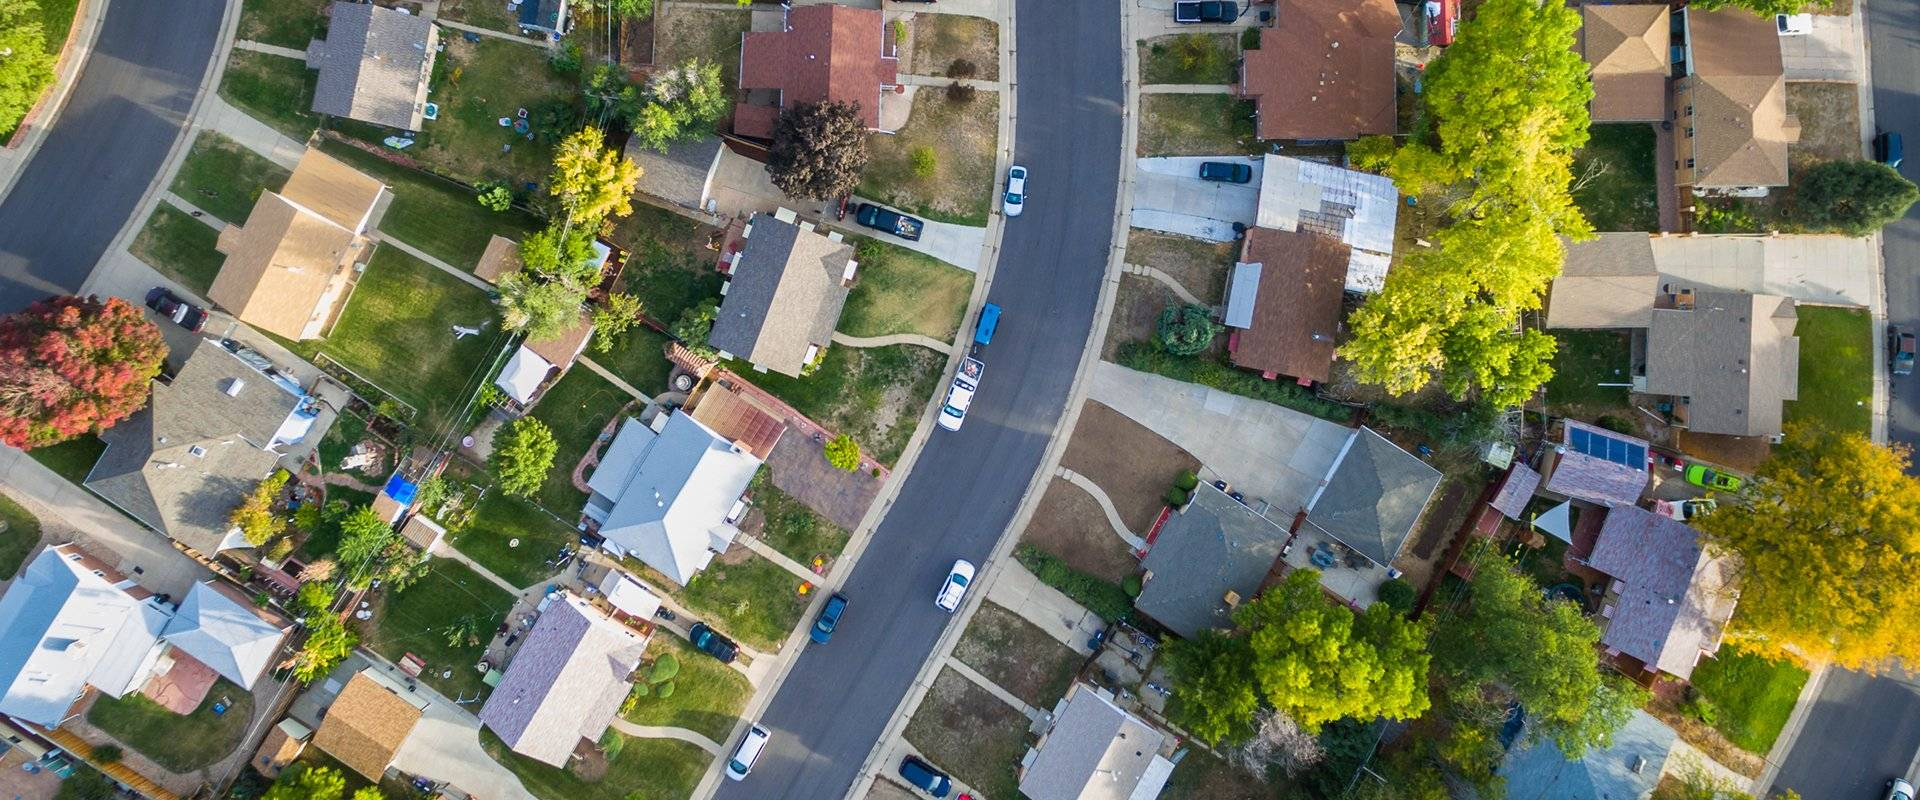 suburb homes from above